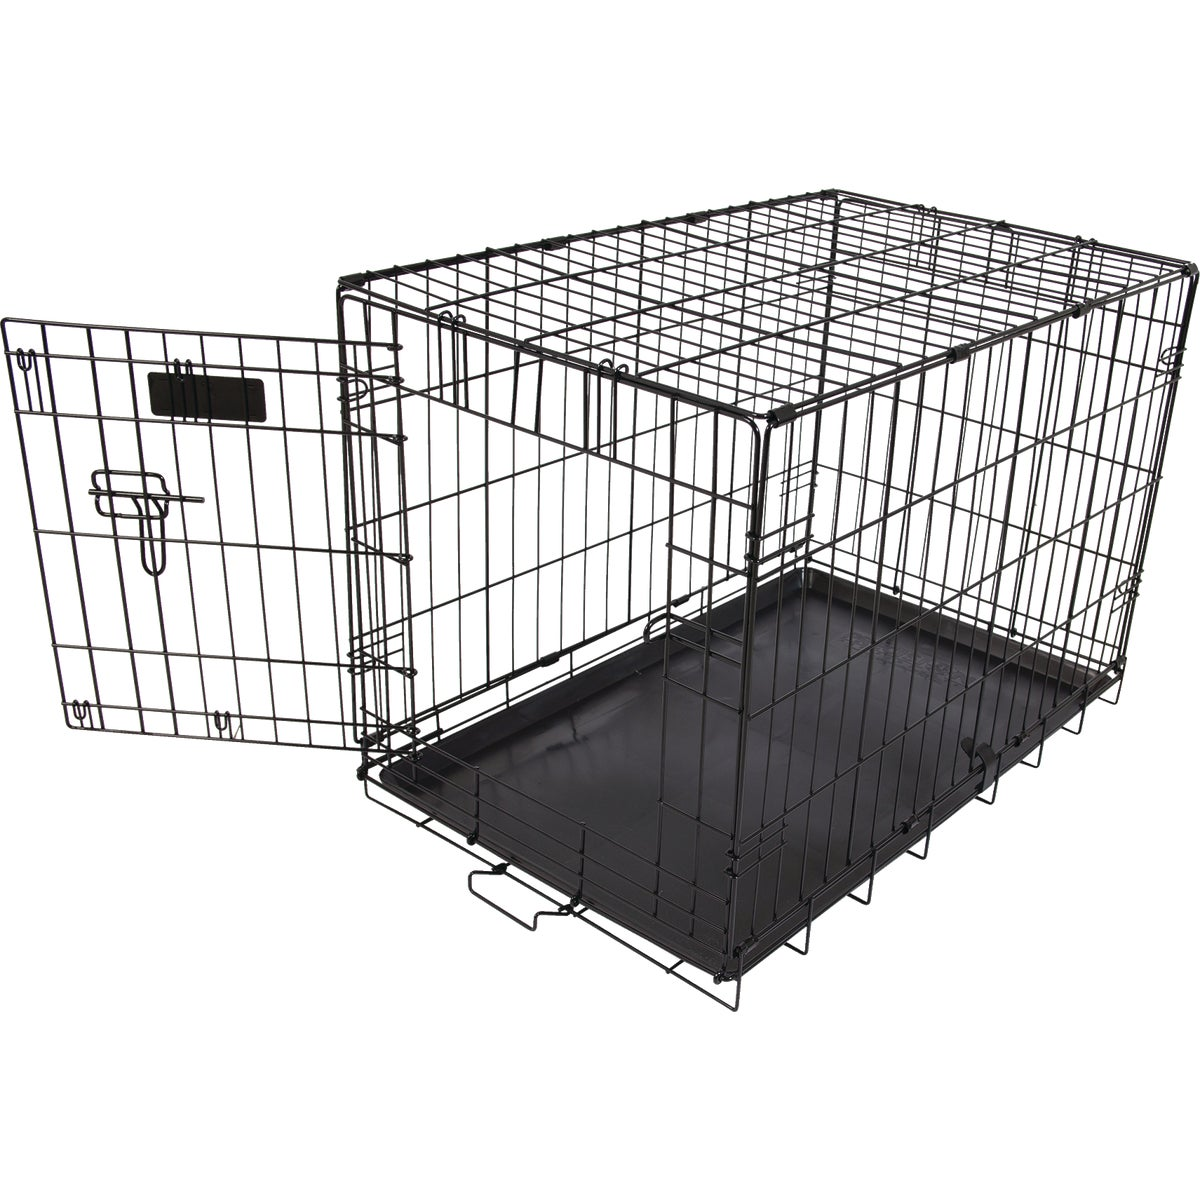 24.6X17X19.4 DOG CRATE - 21942 by Petmate Doskocil